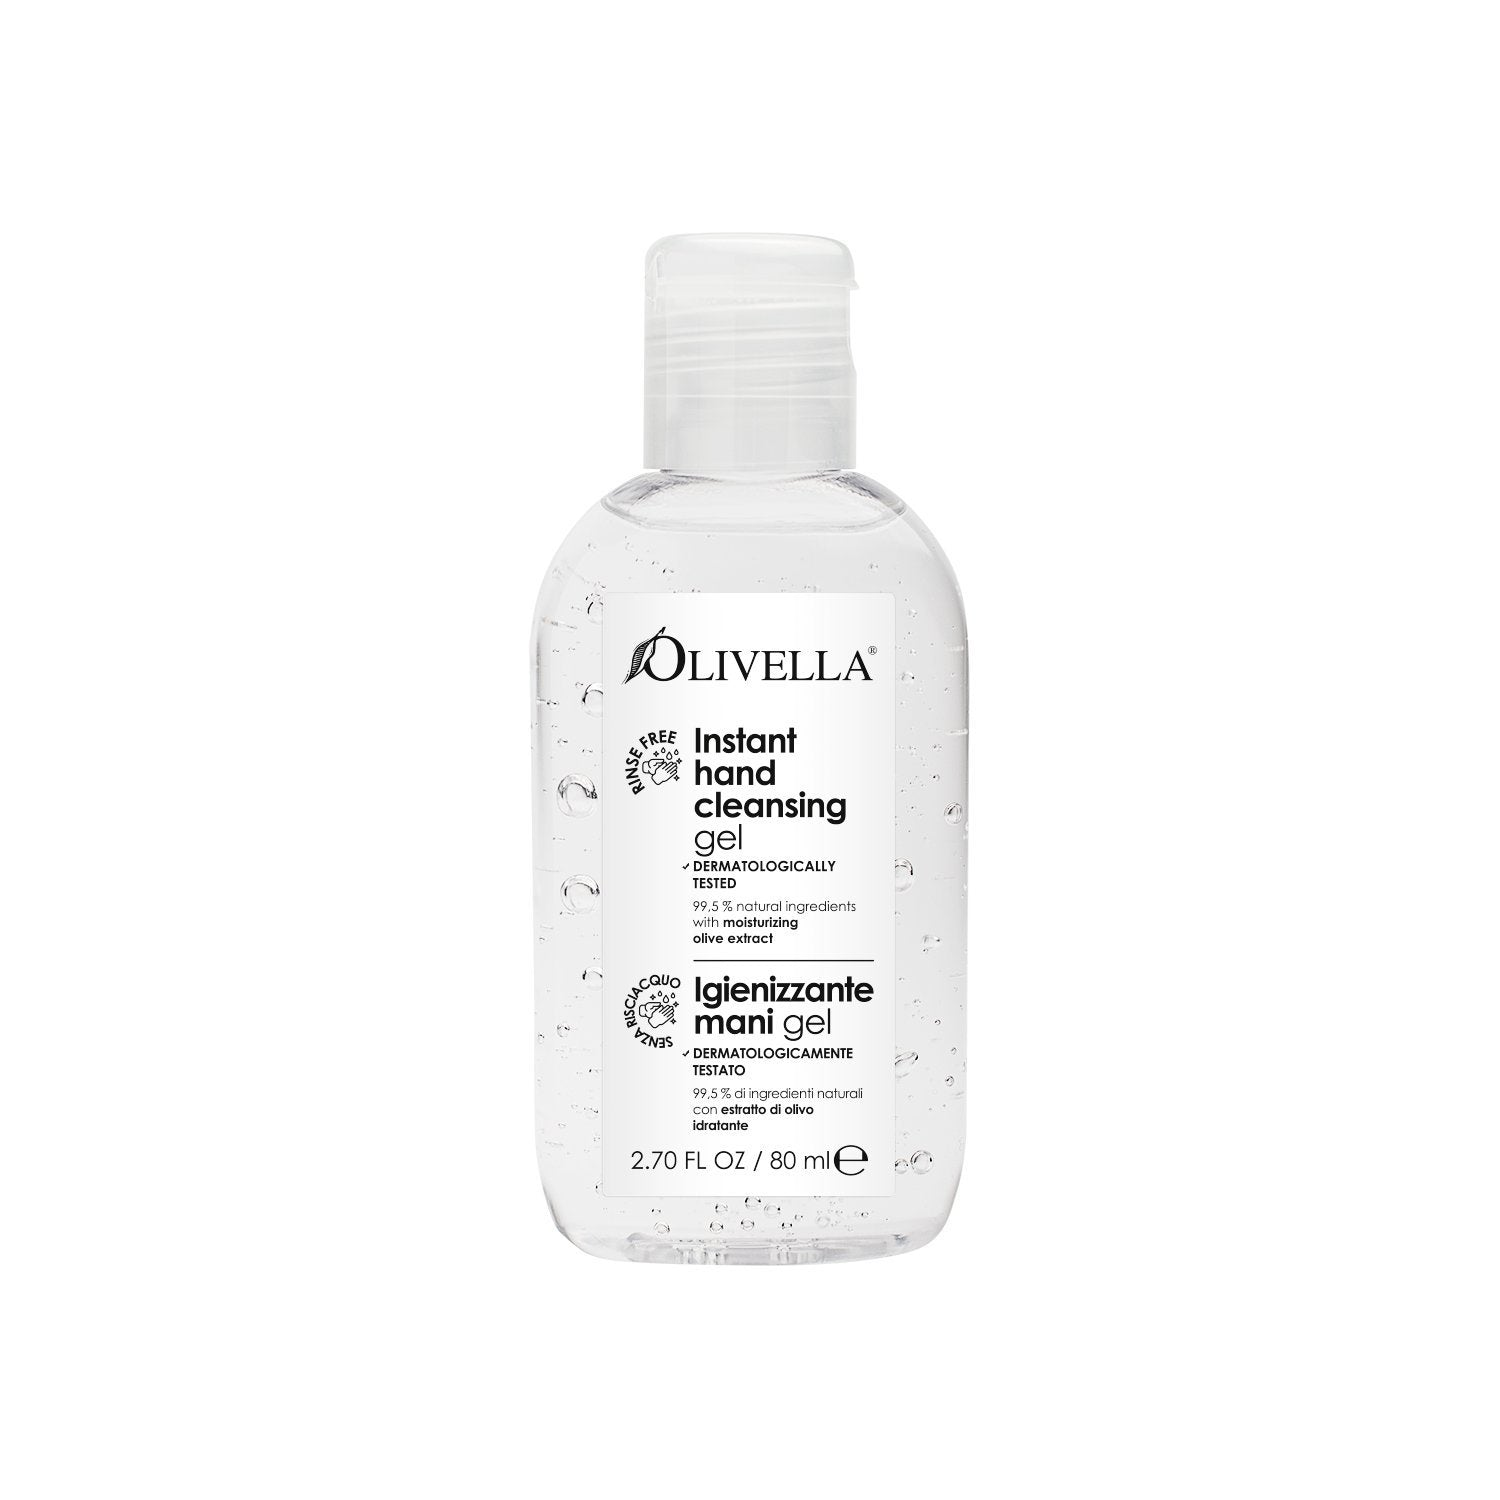 Olivella Instant Hand Cleansing Gel 2.70 Oz